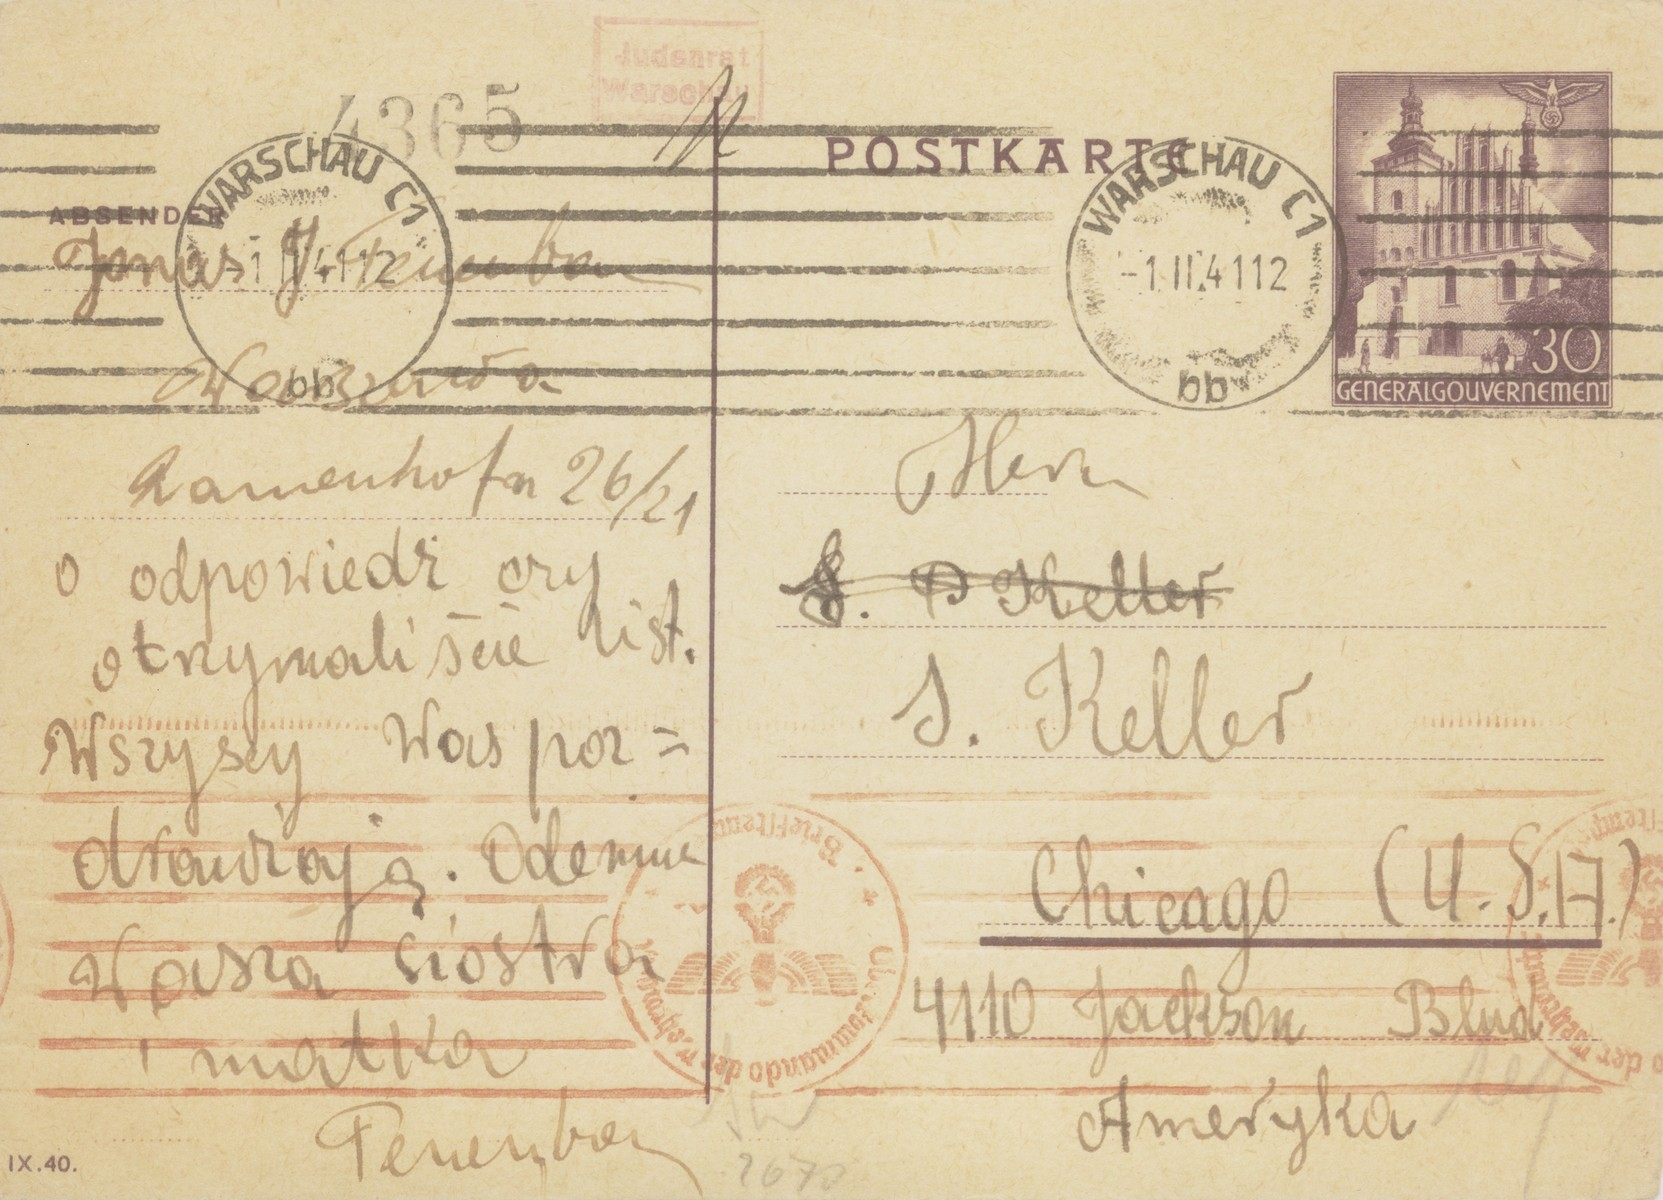 """A postcard sent by Anka Leah Tenenbaum in the Warsaw ghetto to her sister and daughter in Chicago.   The Polish text reads: """"To my dear sister, brother-in-law and daughter.  We received your two packages. Please send more food parcels.  We know that the packages can be as large as 4 kg.  If you can, please send matzoh for Passover.  There is nothing more dignified to write about.  Do what you can.  Please let me know if you get our letters.  Love from us all, your sister and mother Tenenbaum."""""""